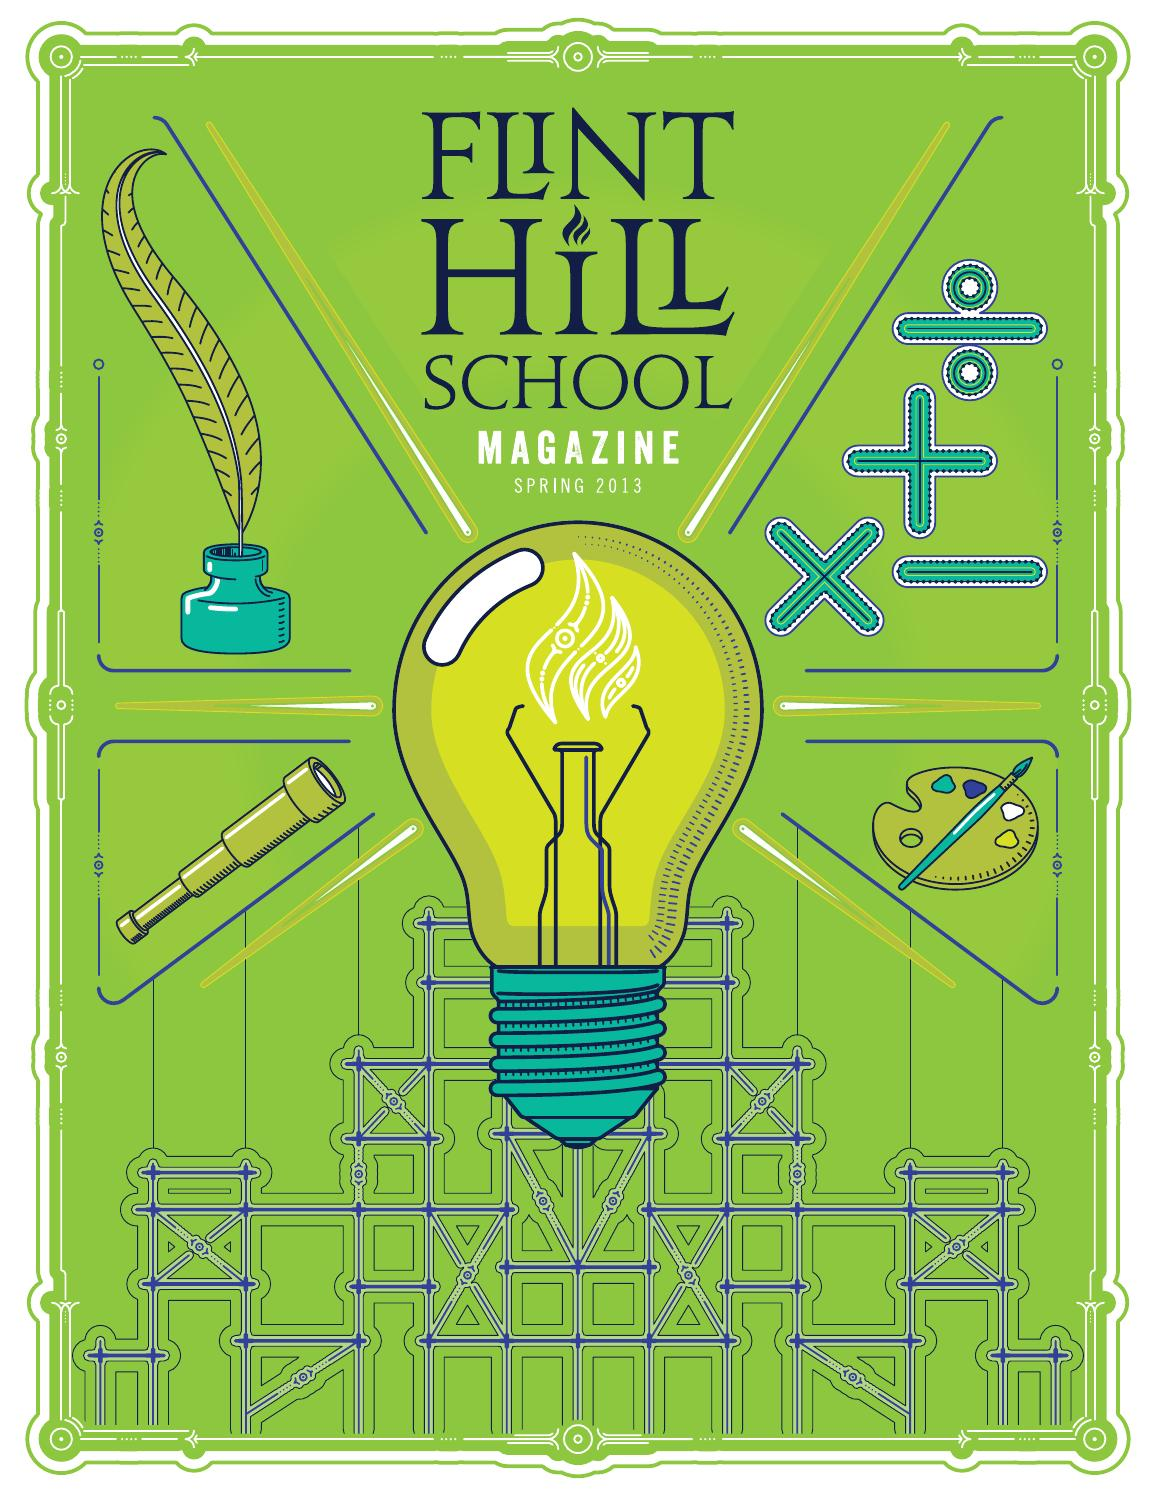 Spring 2013 Magazine By Flint Hill School Issuu Otis Golf Cart Wiring Diagram